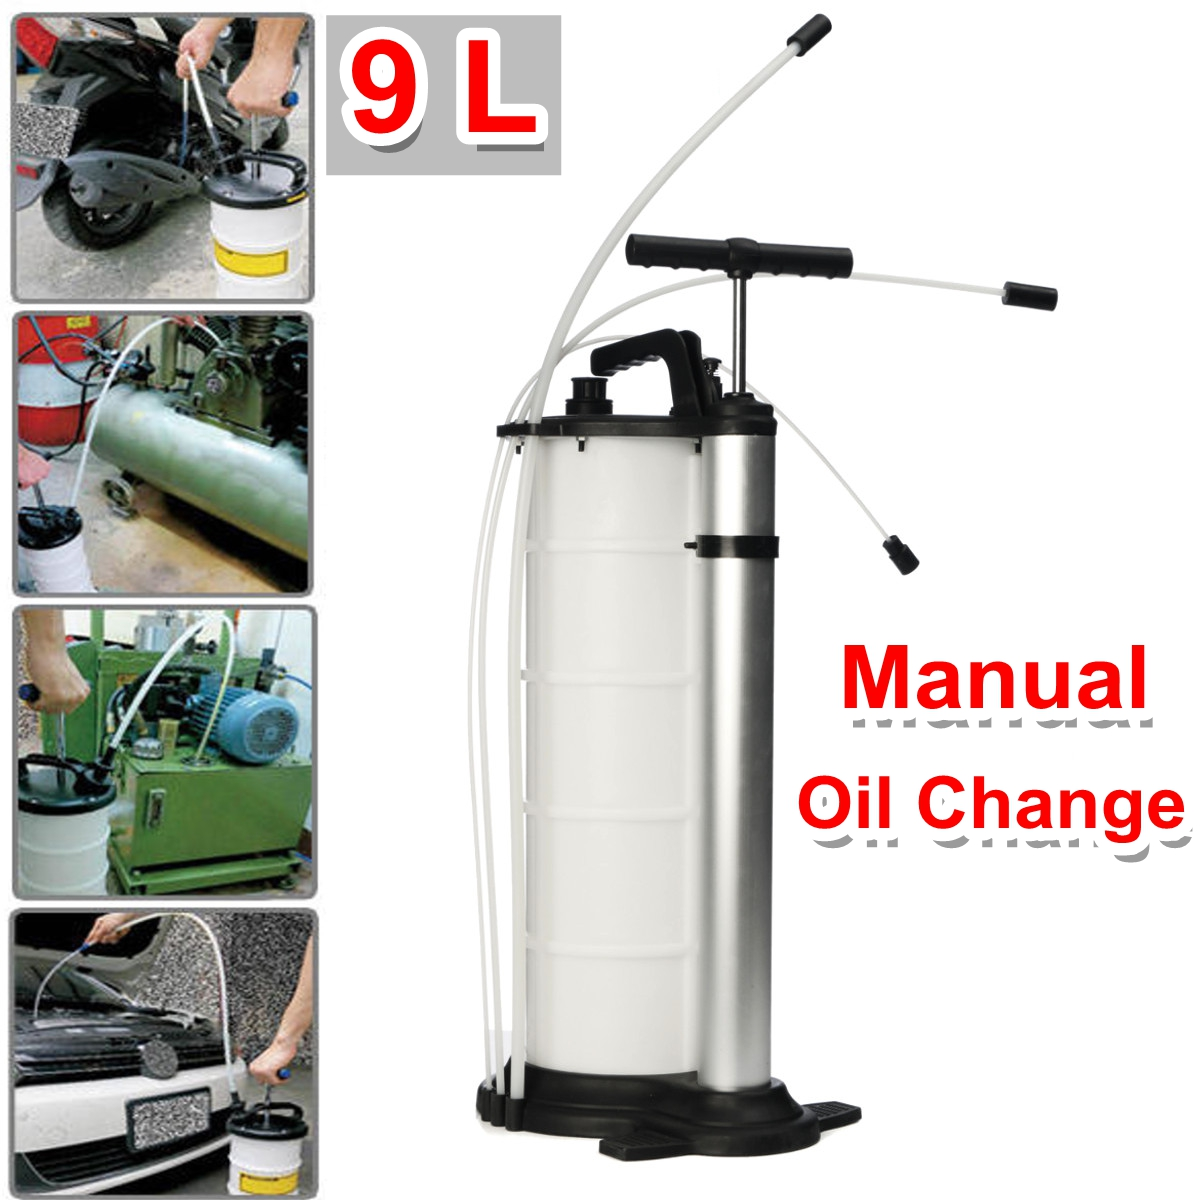 9L Vacuum Oil Fluid Suction Extractor Changer Manual Car Fuel Pump Tank Remover 7l manual car oil vacuum extractor pump petrol water suction extractiontransfer fluid fuel transfer oil tank pump for car boat